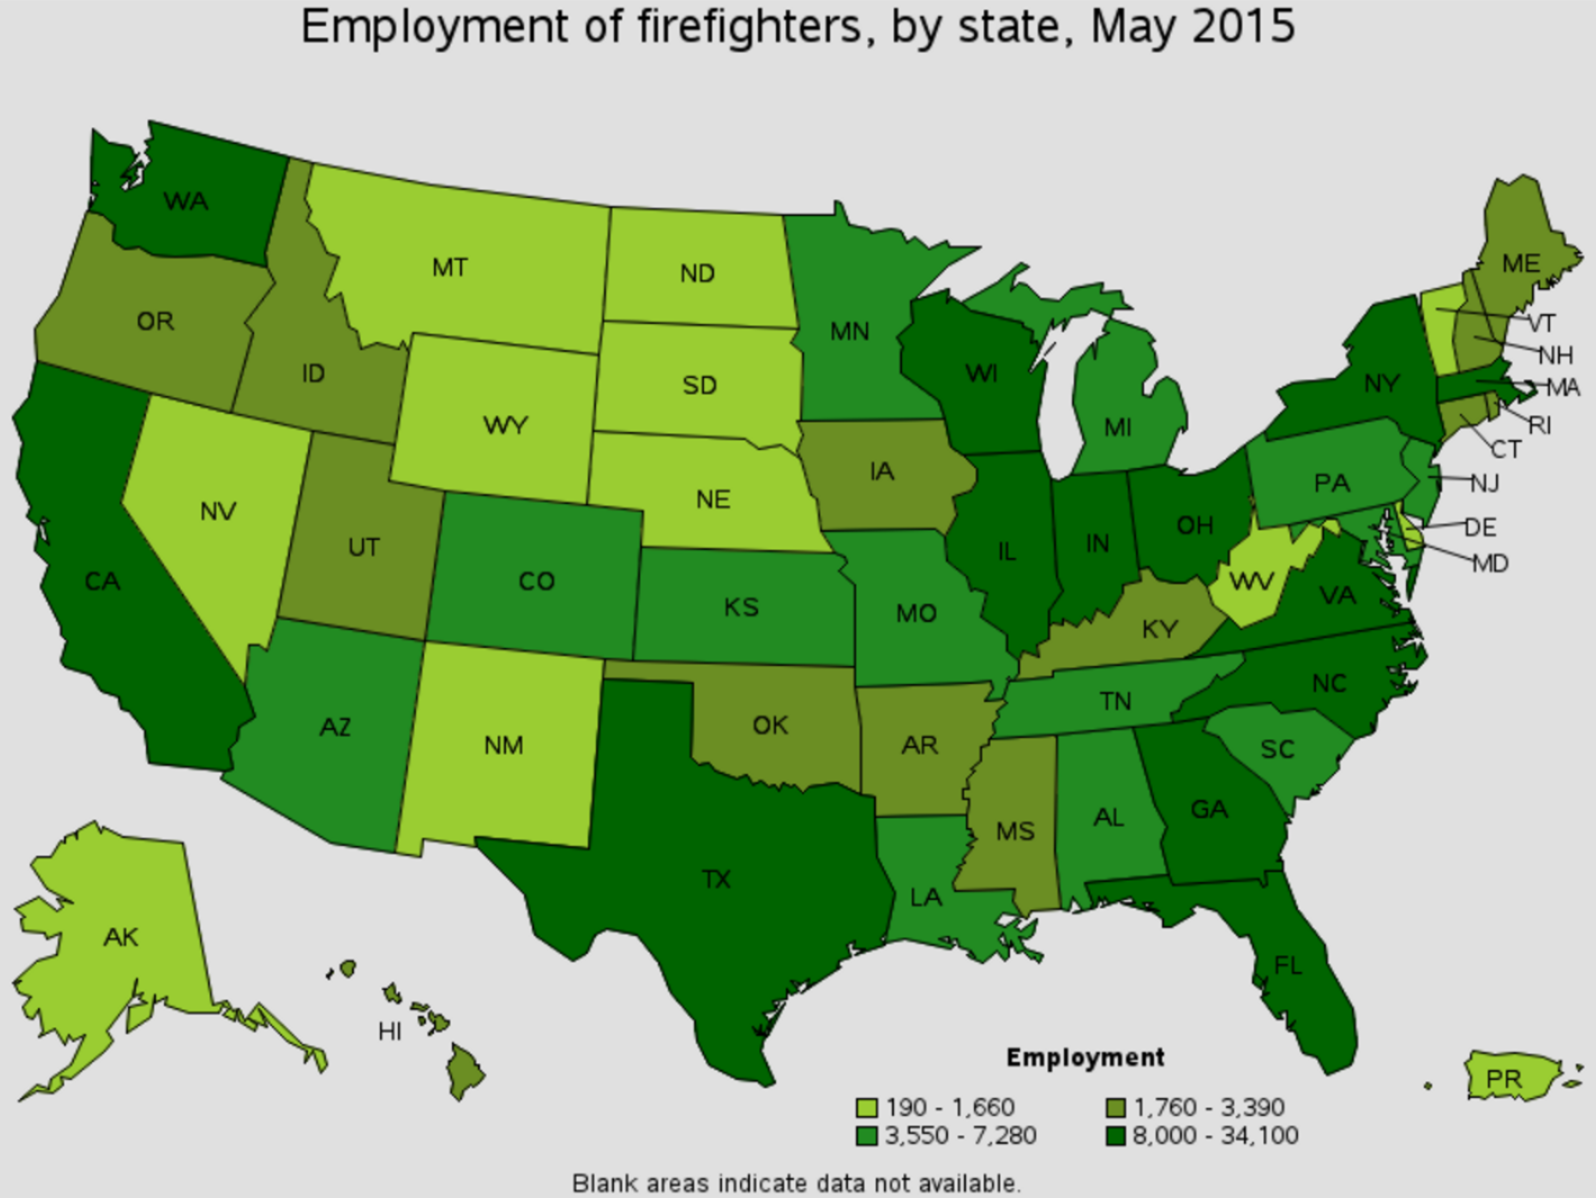 firefighter job outlook by state Tremonton Utah